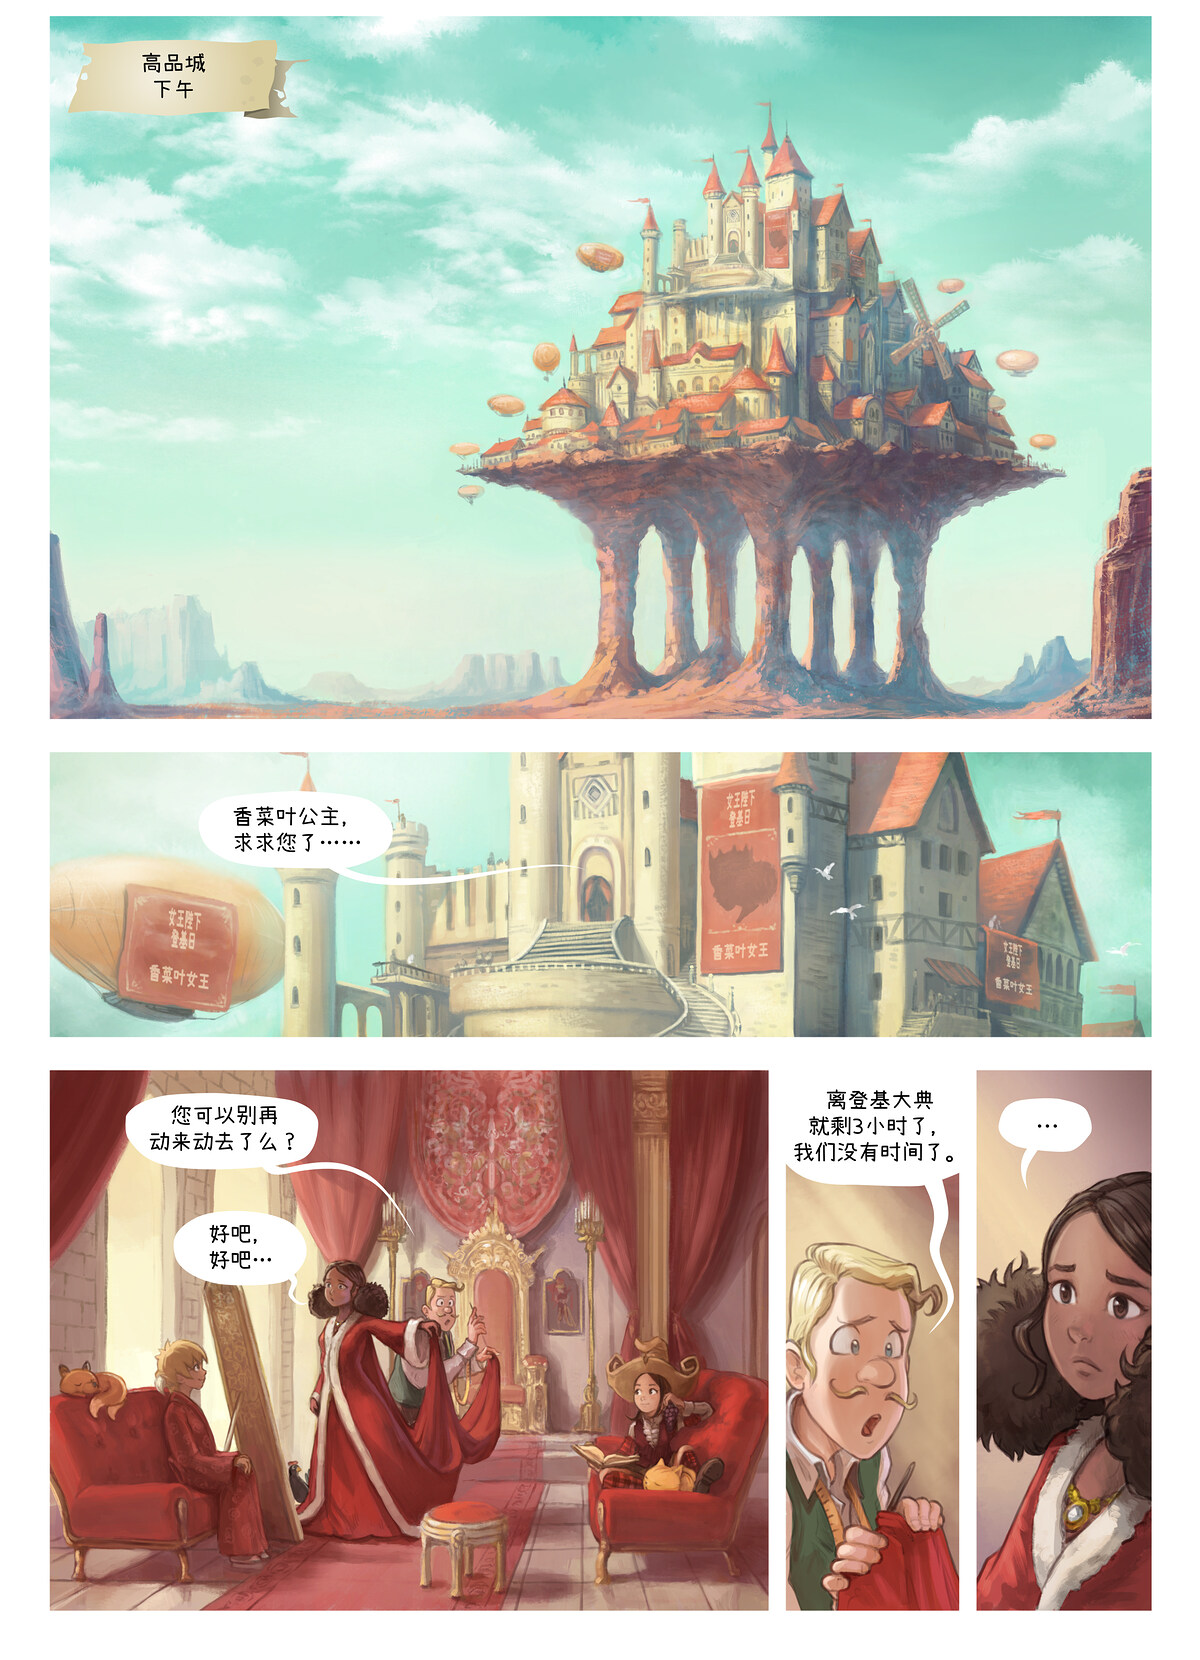 A webcomic page of Pepper&Carrot, 漫画全集 27 [cn], 页面 1